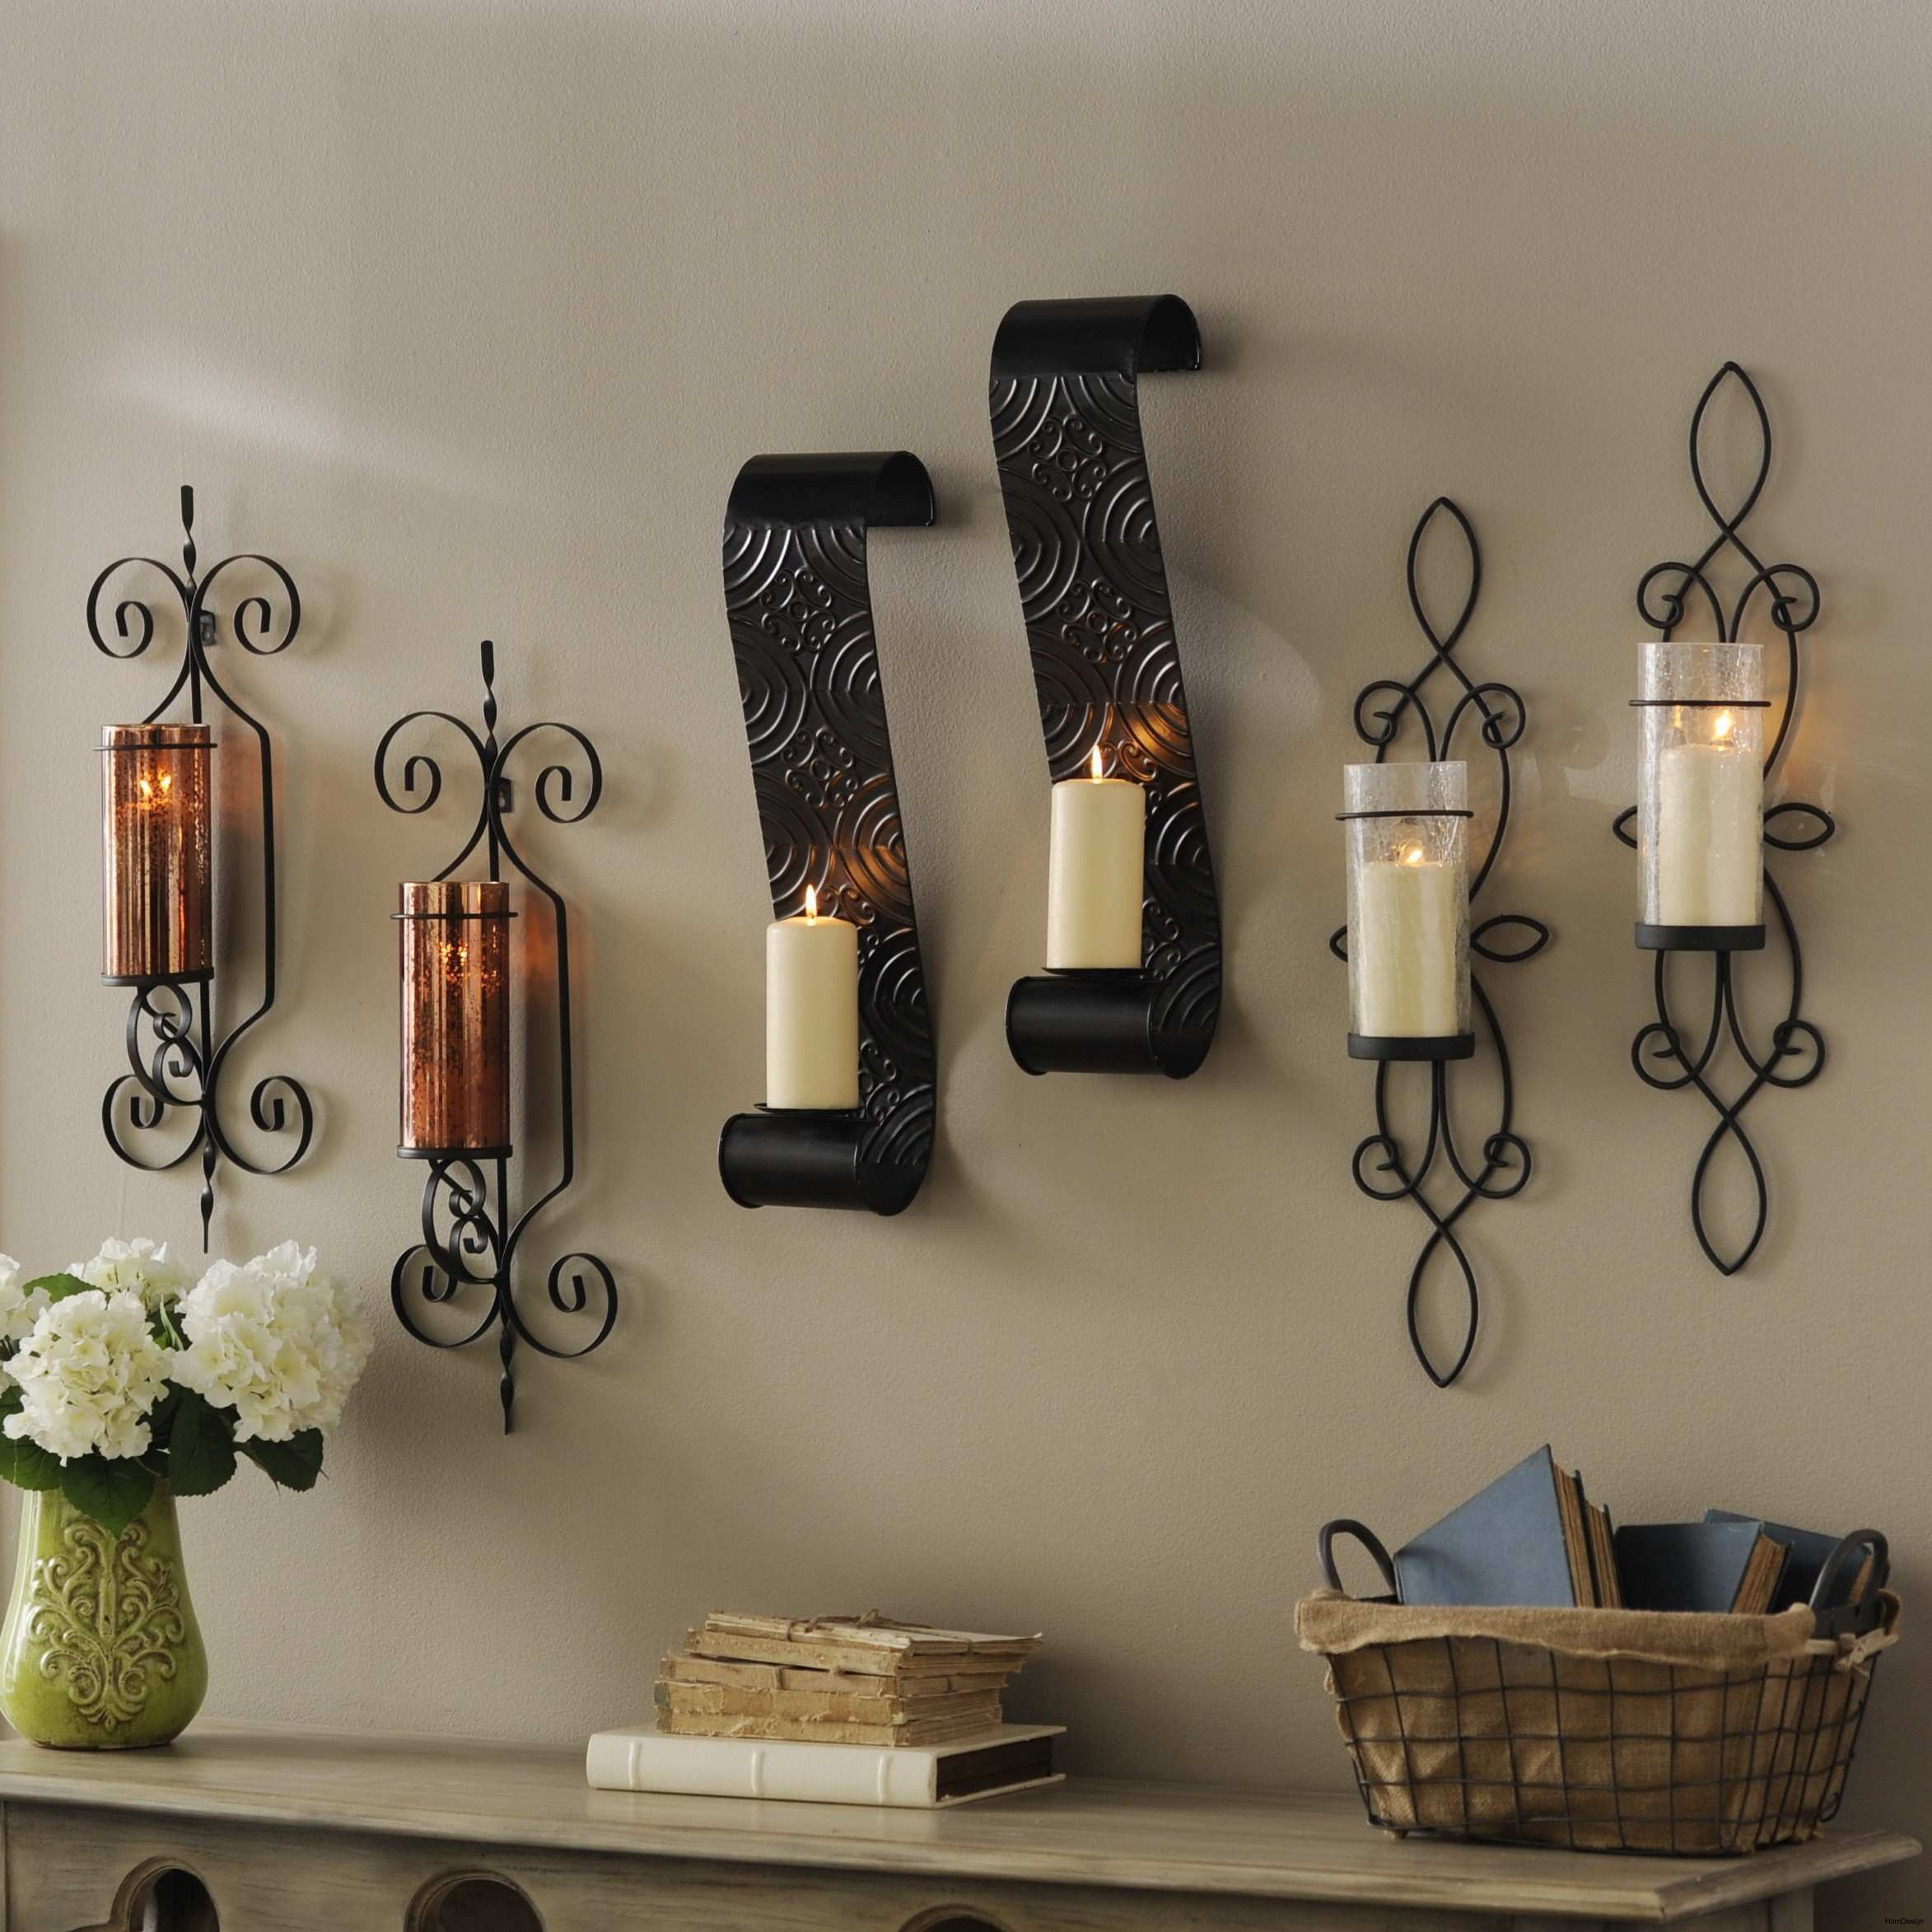 Retro Kitchen Light New Awesome Metal Kitchen Wall Decor Best Wall